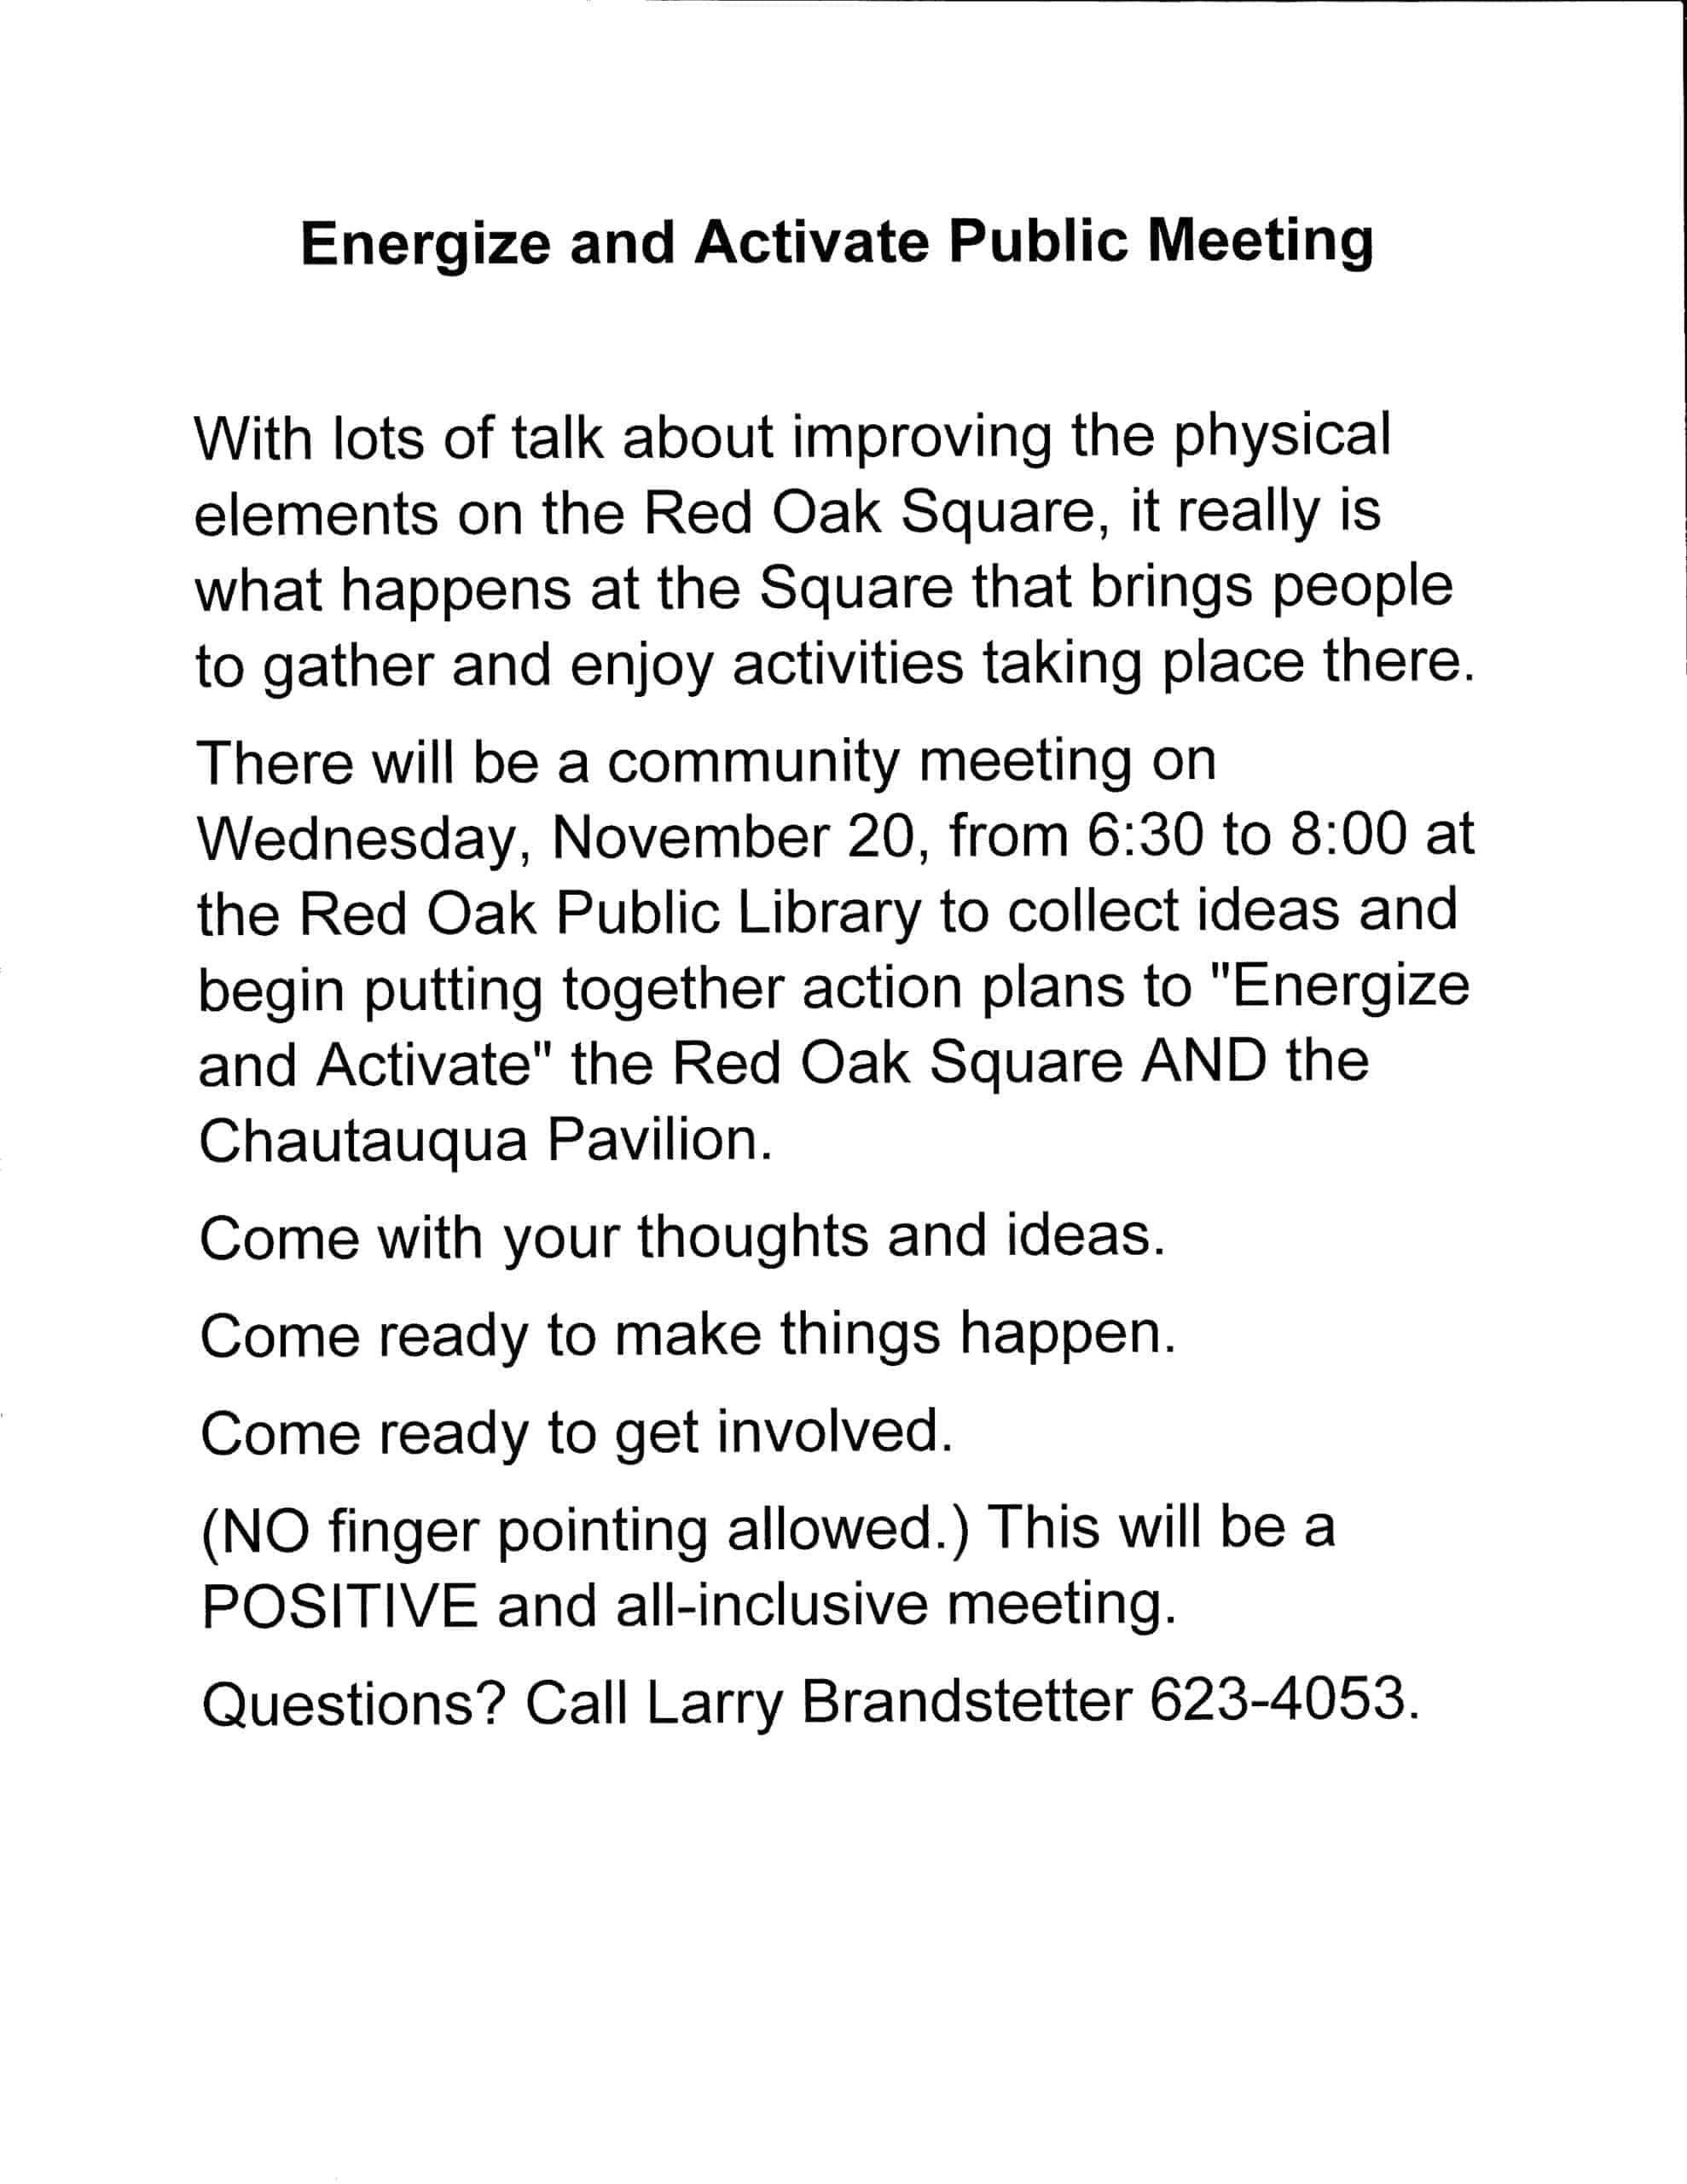 Energize and Activate Public Meeting